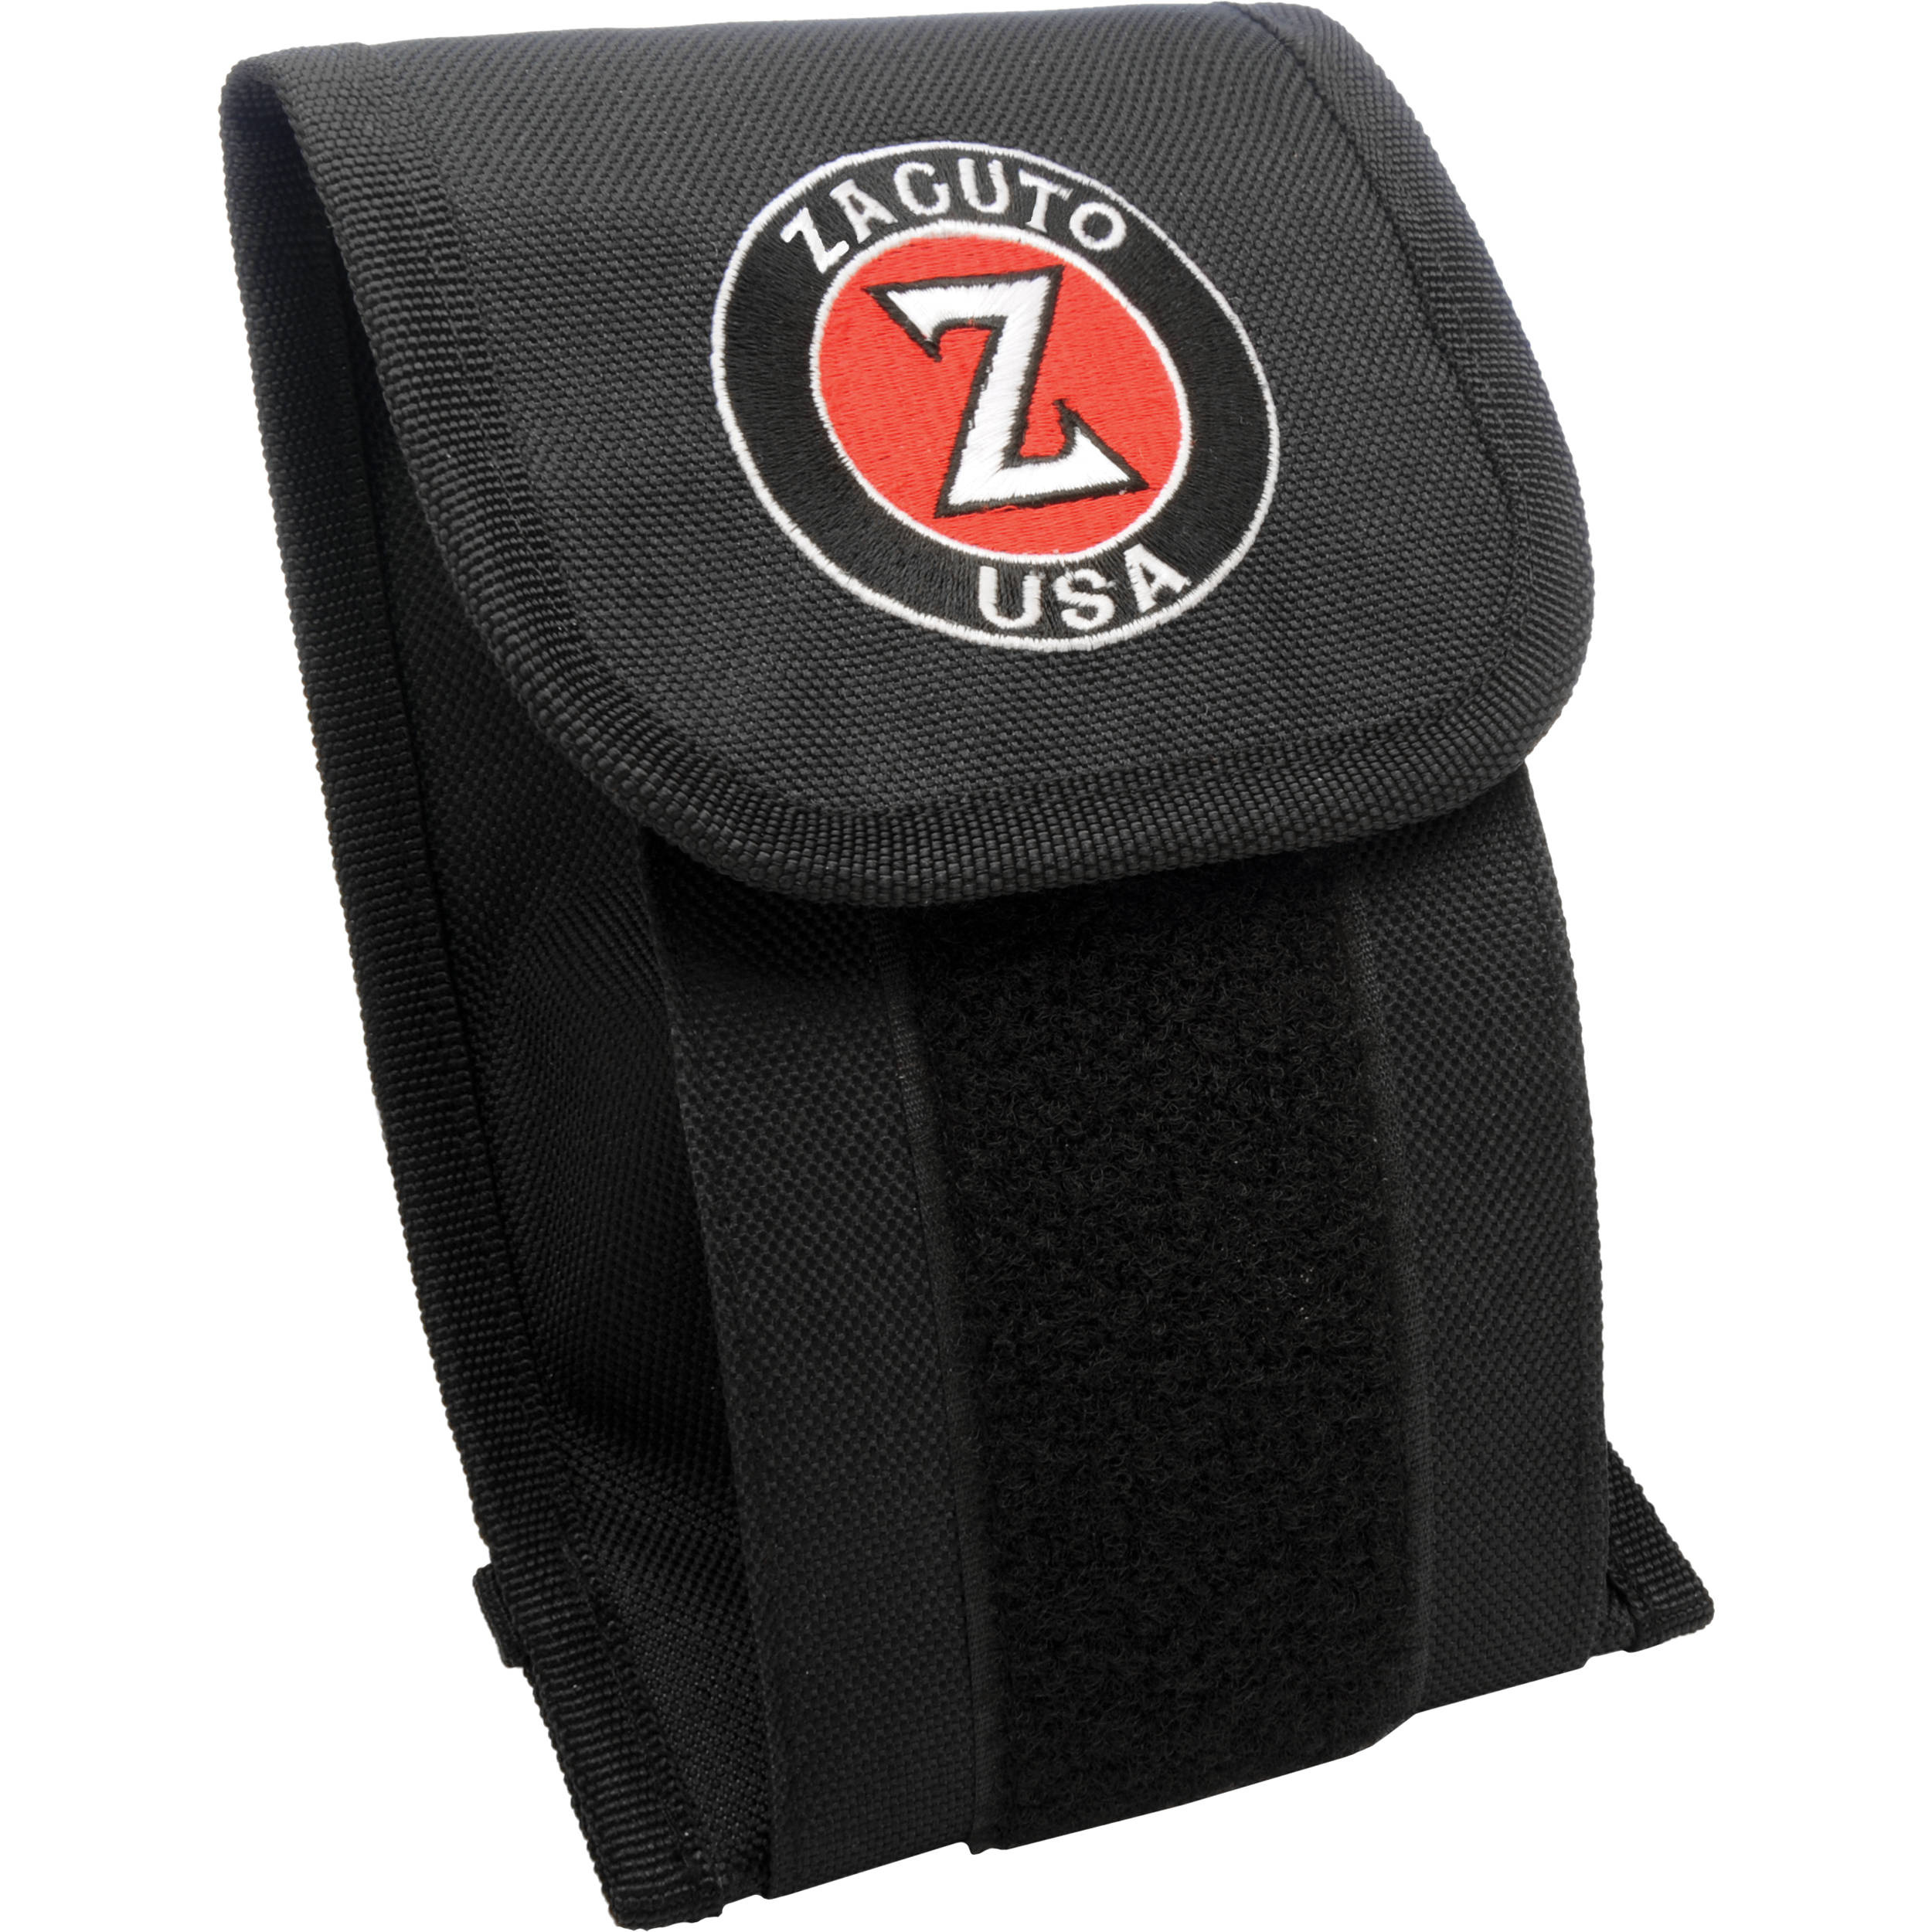 Zacuto Z-Finder Storage Case